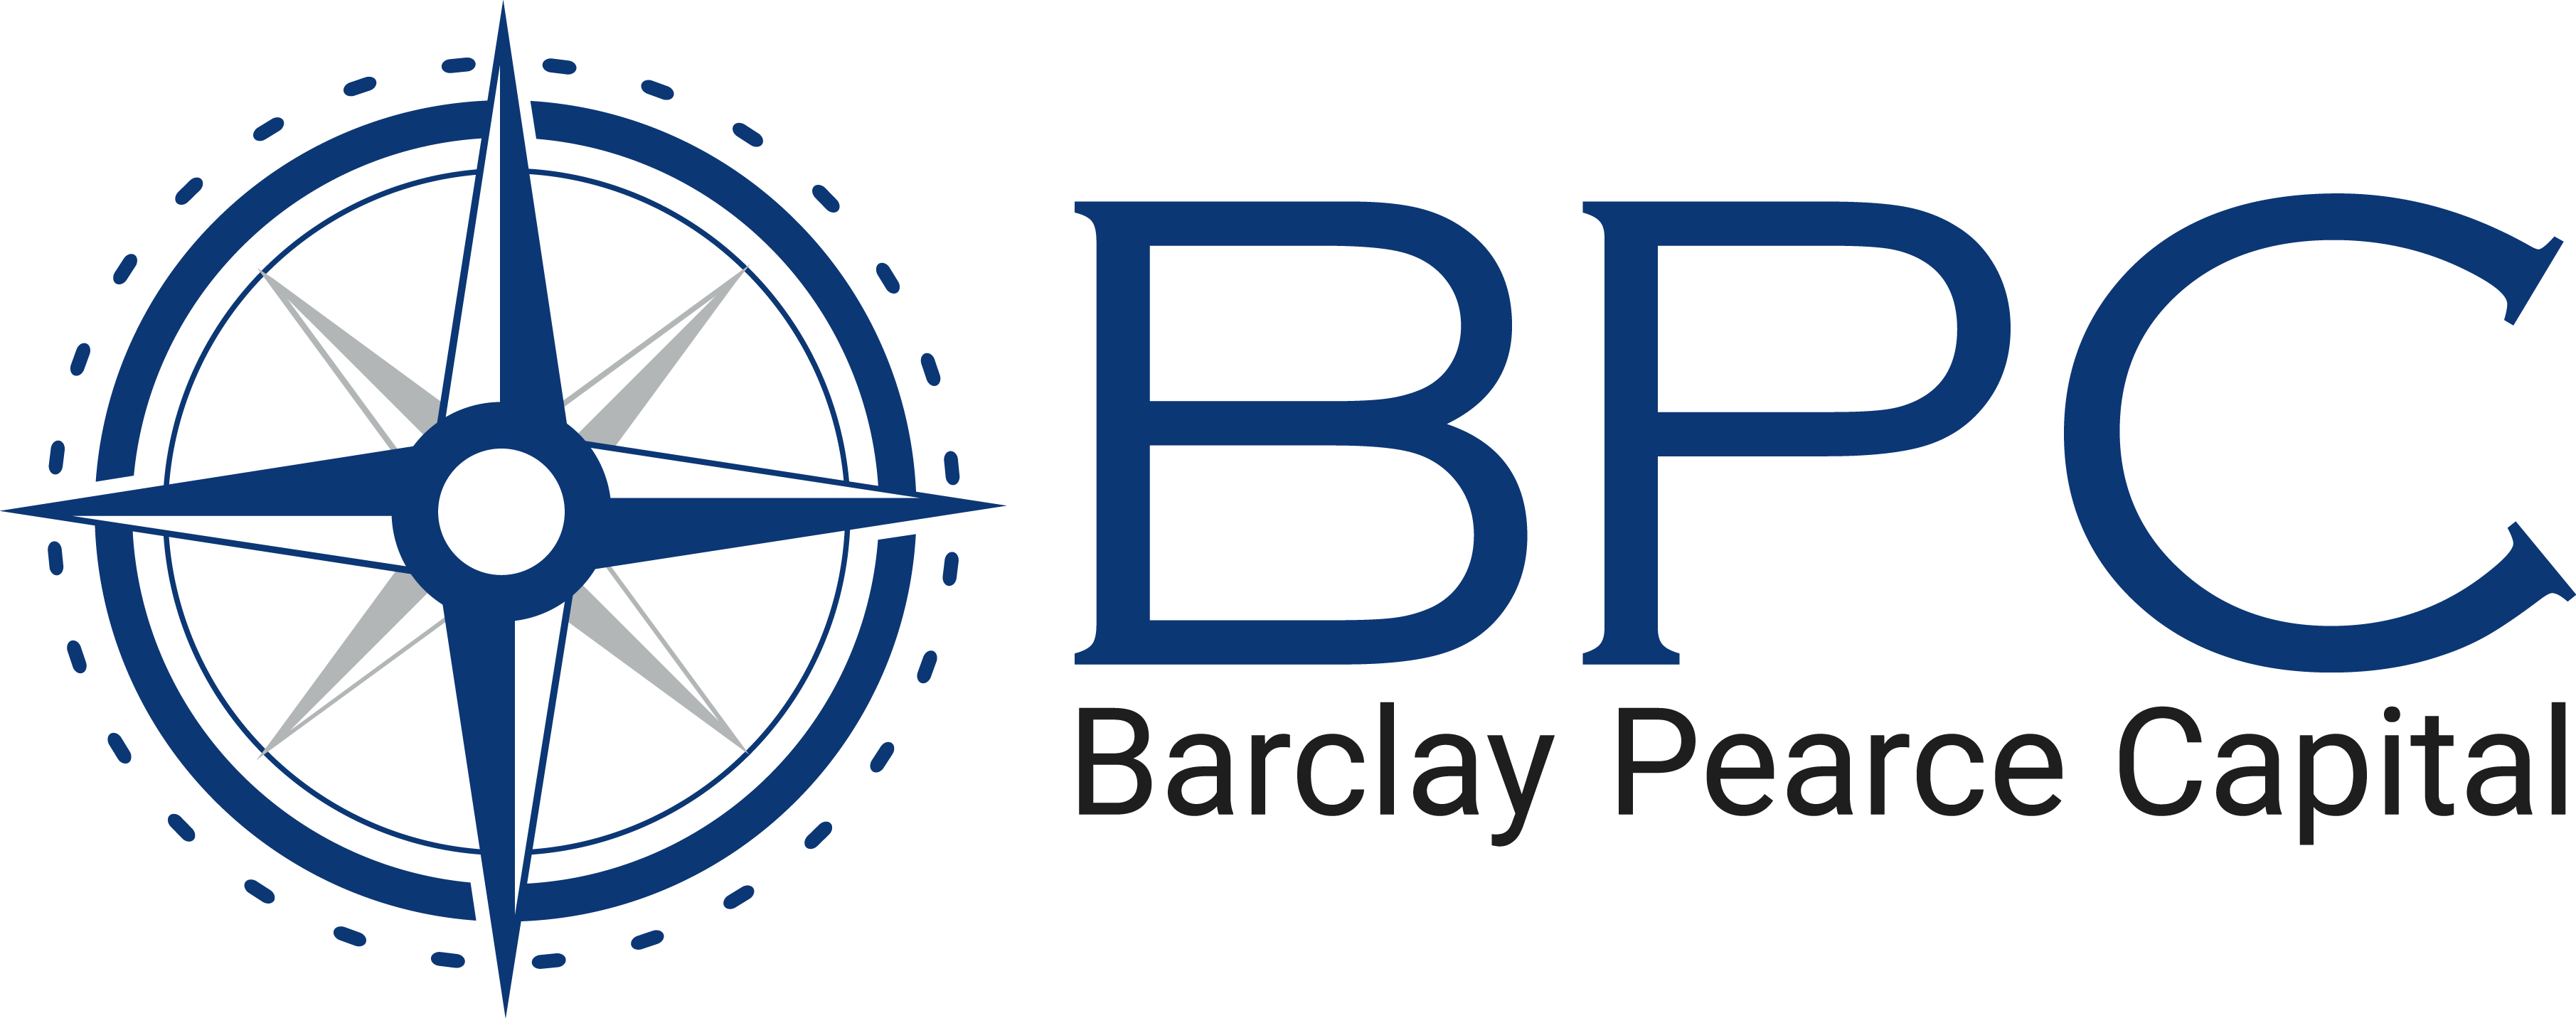 Barclays Pearce Capital